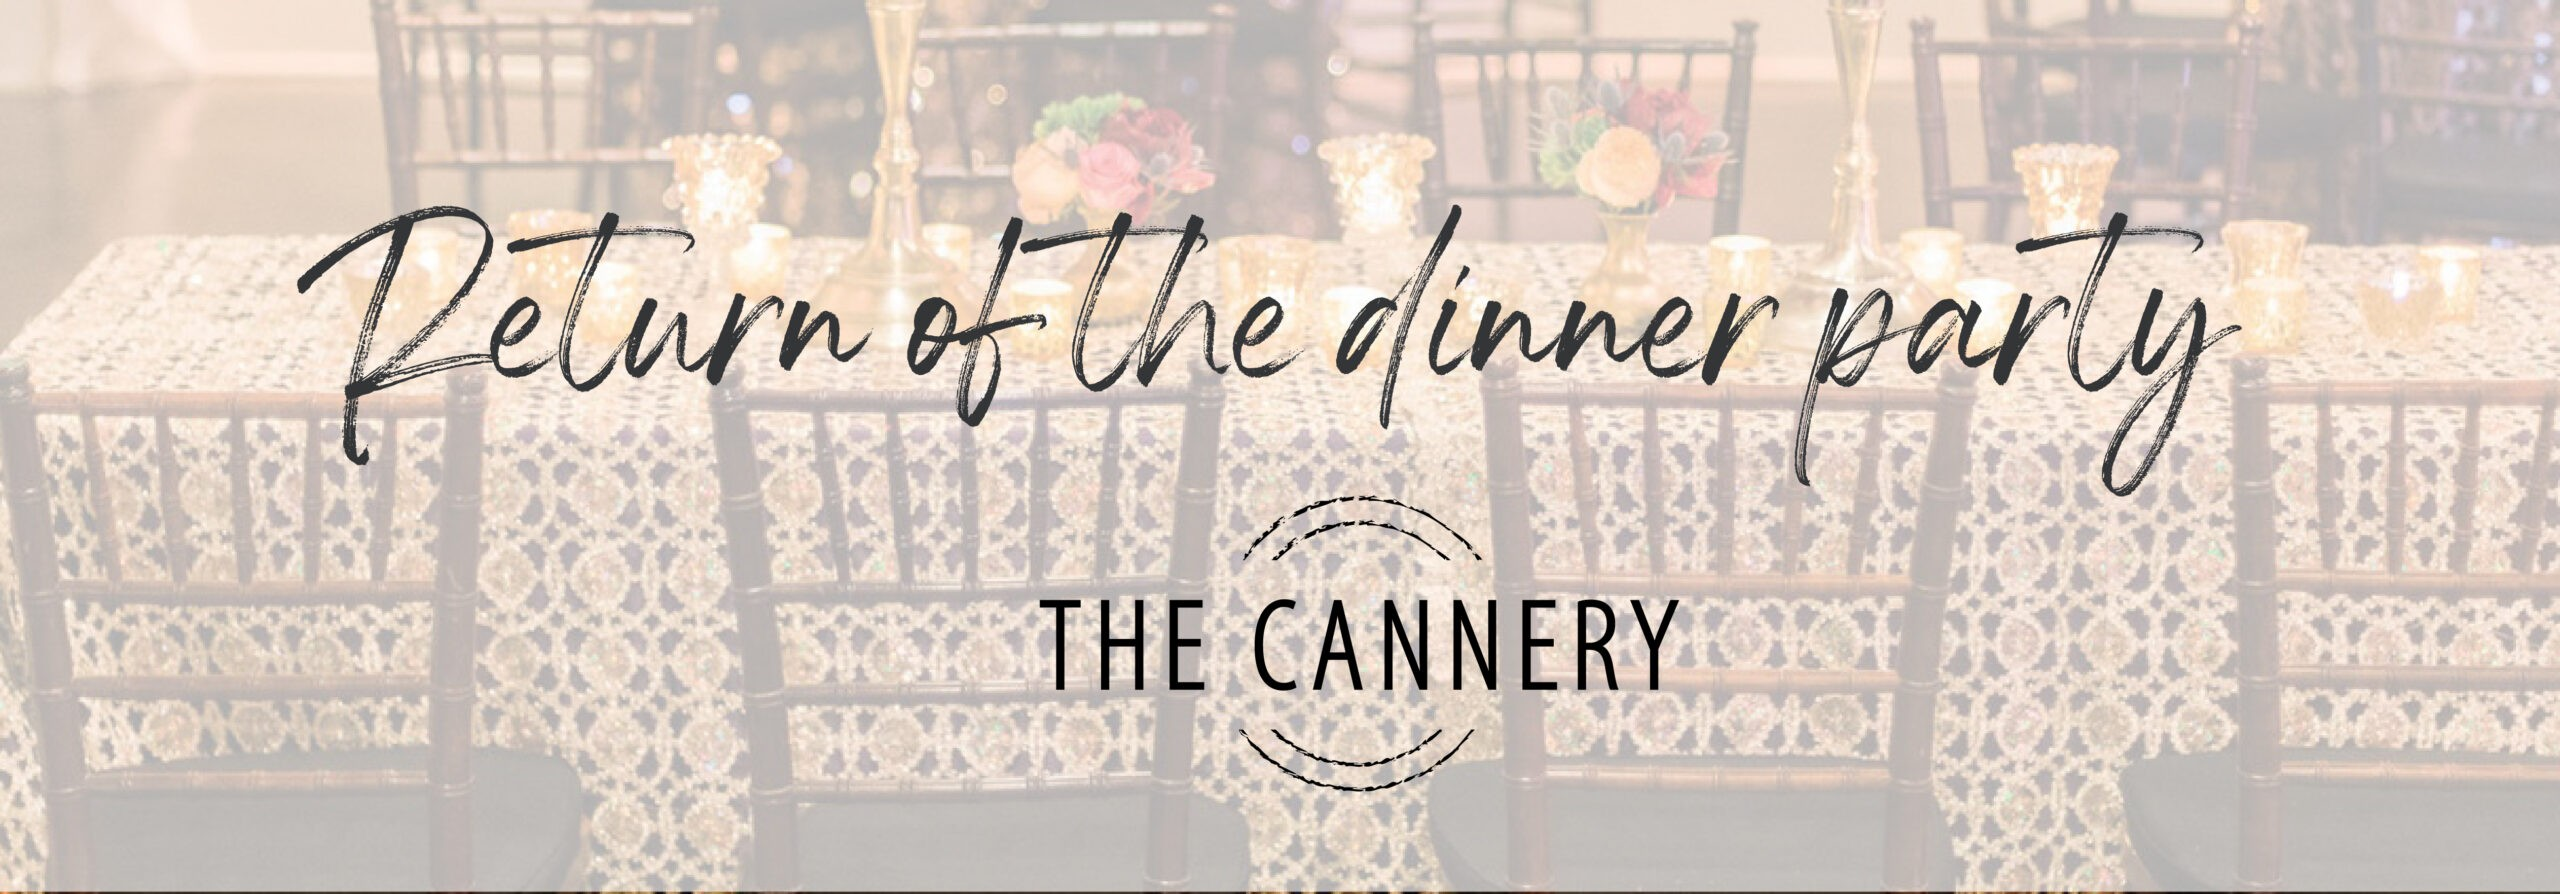 The Return of the Dinner Party!